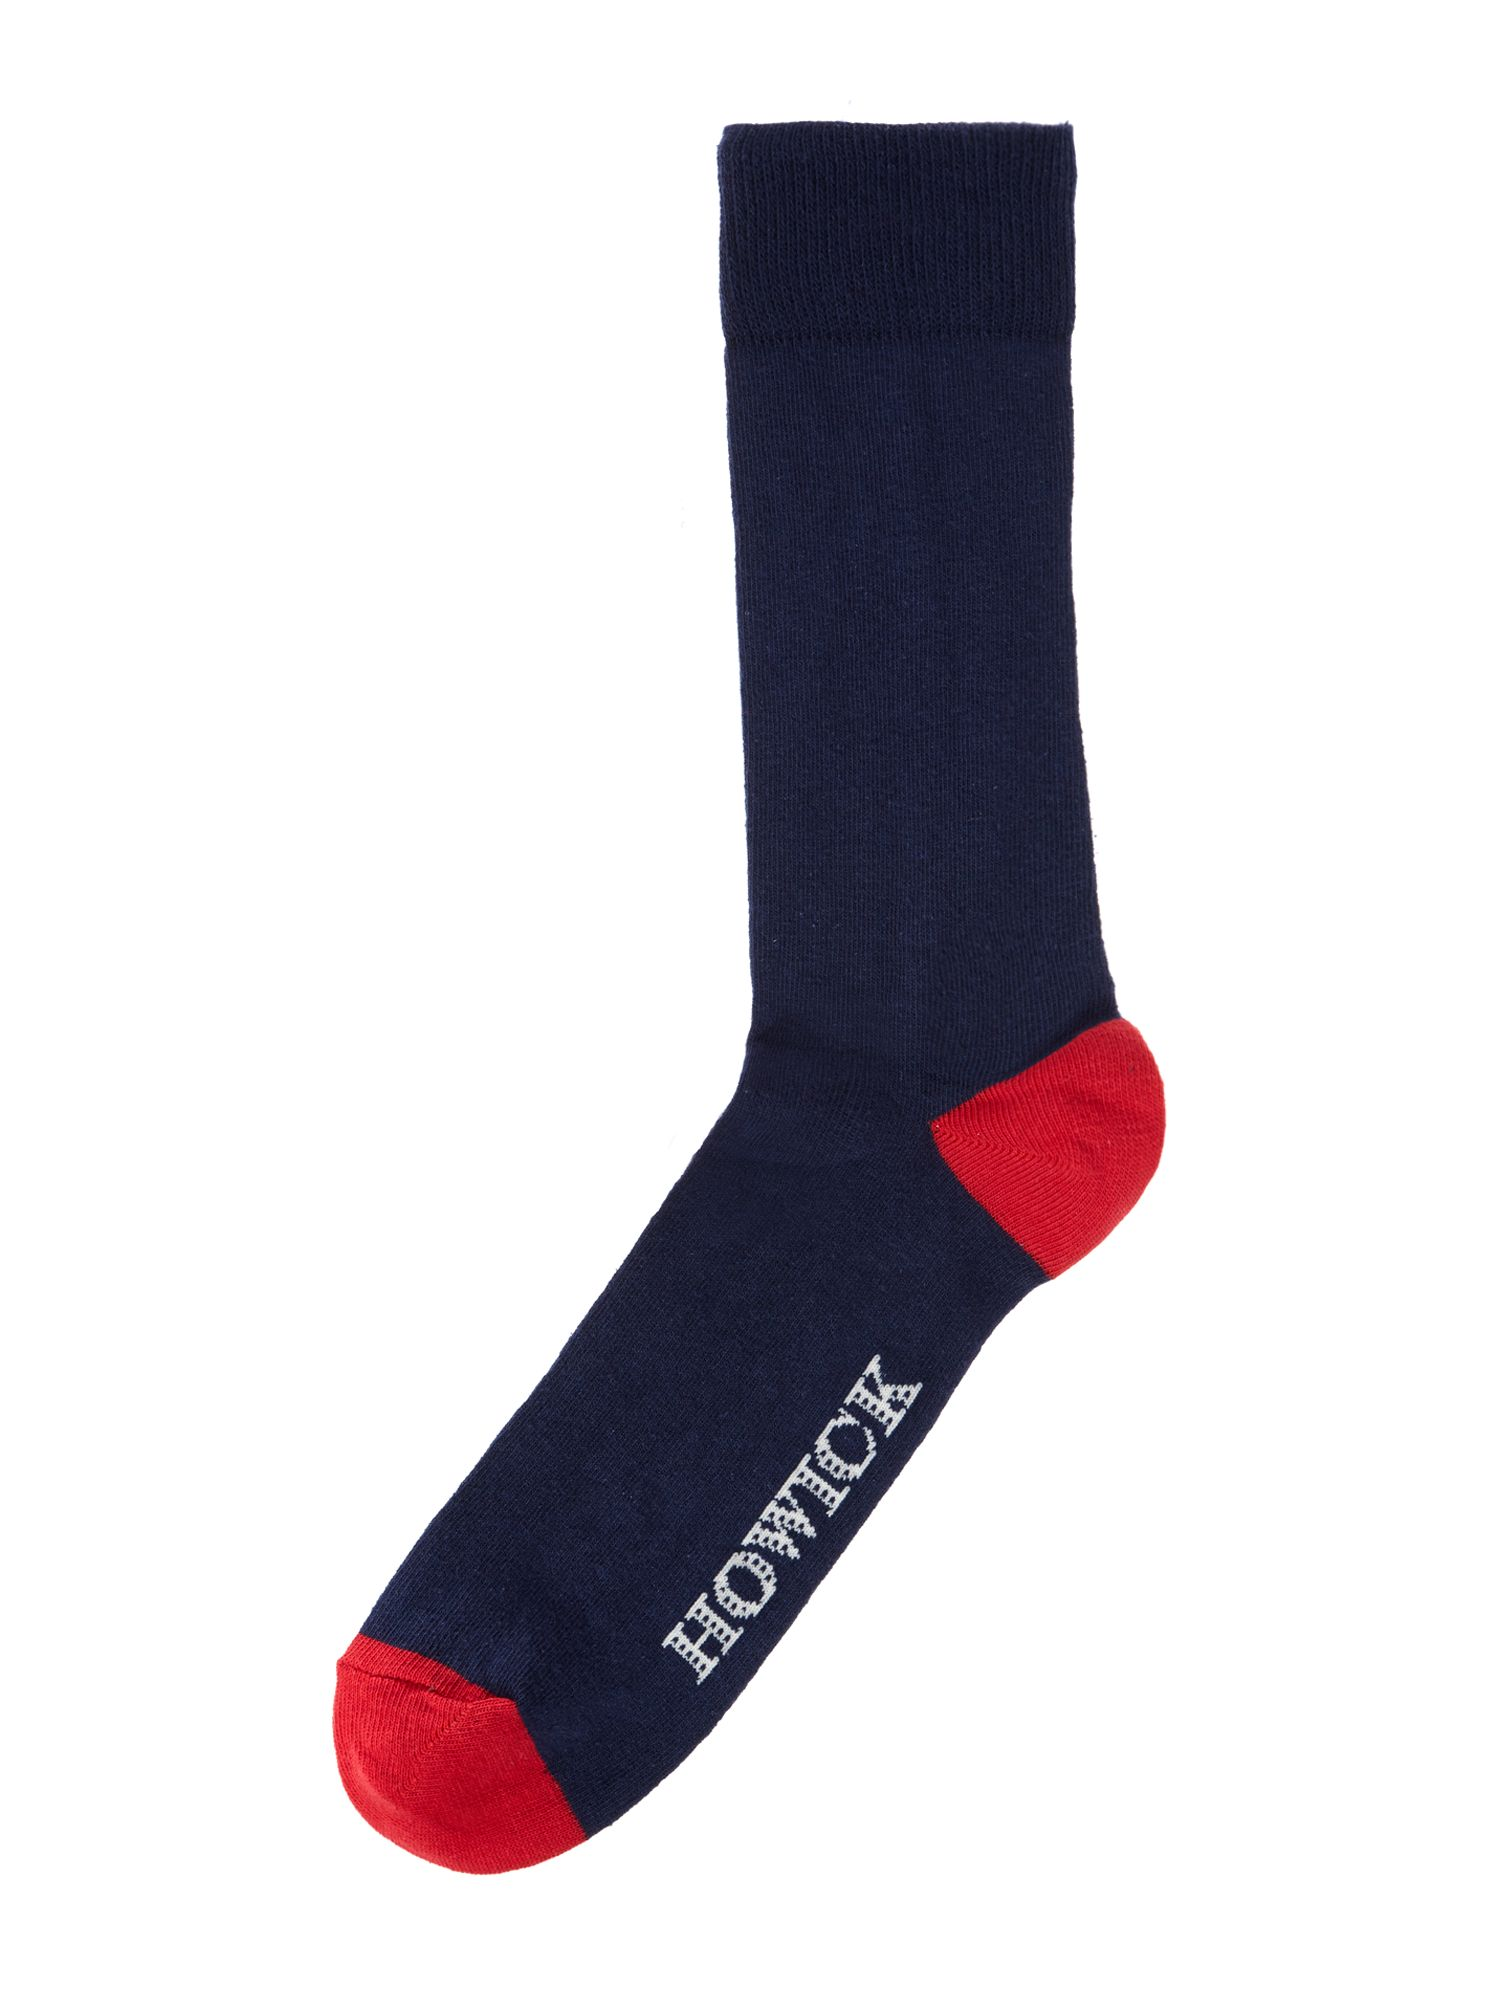 Clubhouse multi stripe socks